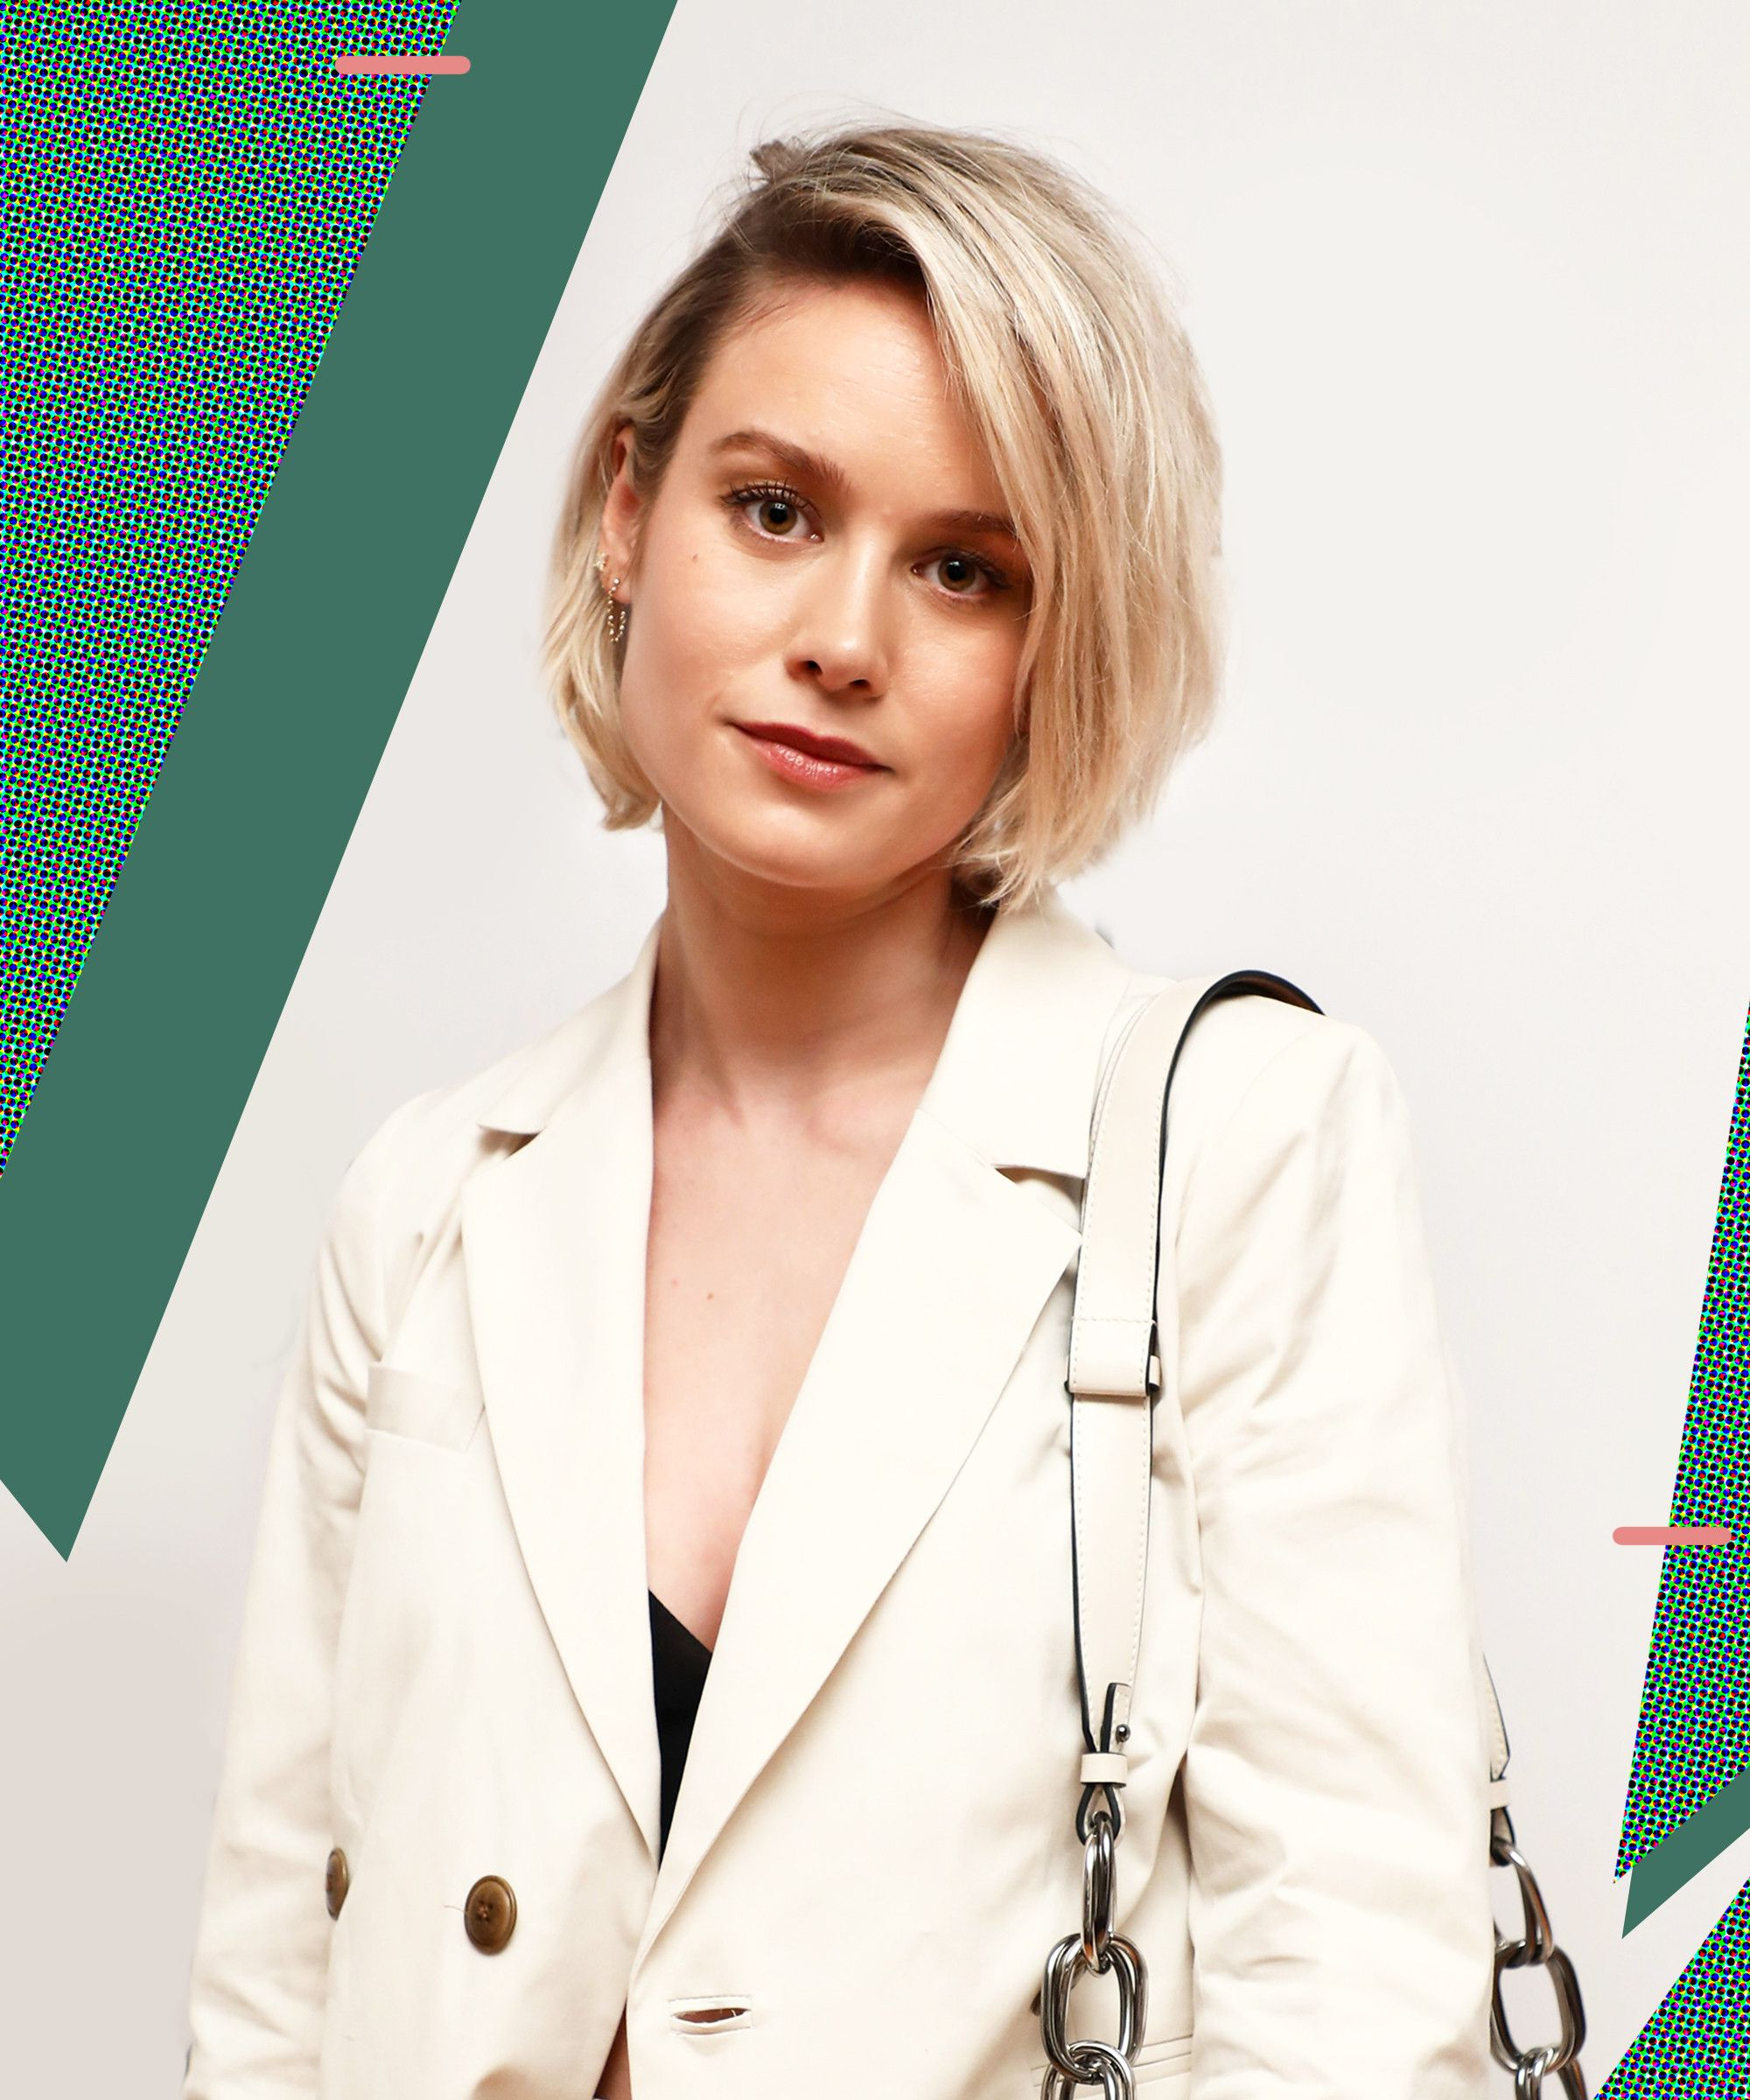 A Line Bob Haircut Looks For Chic Hairstyles In 2019 Regarding Modern And Stylish Blonde Bob Haircuts (View 17 of 20)